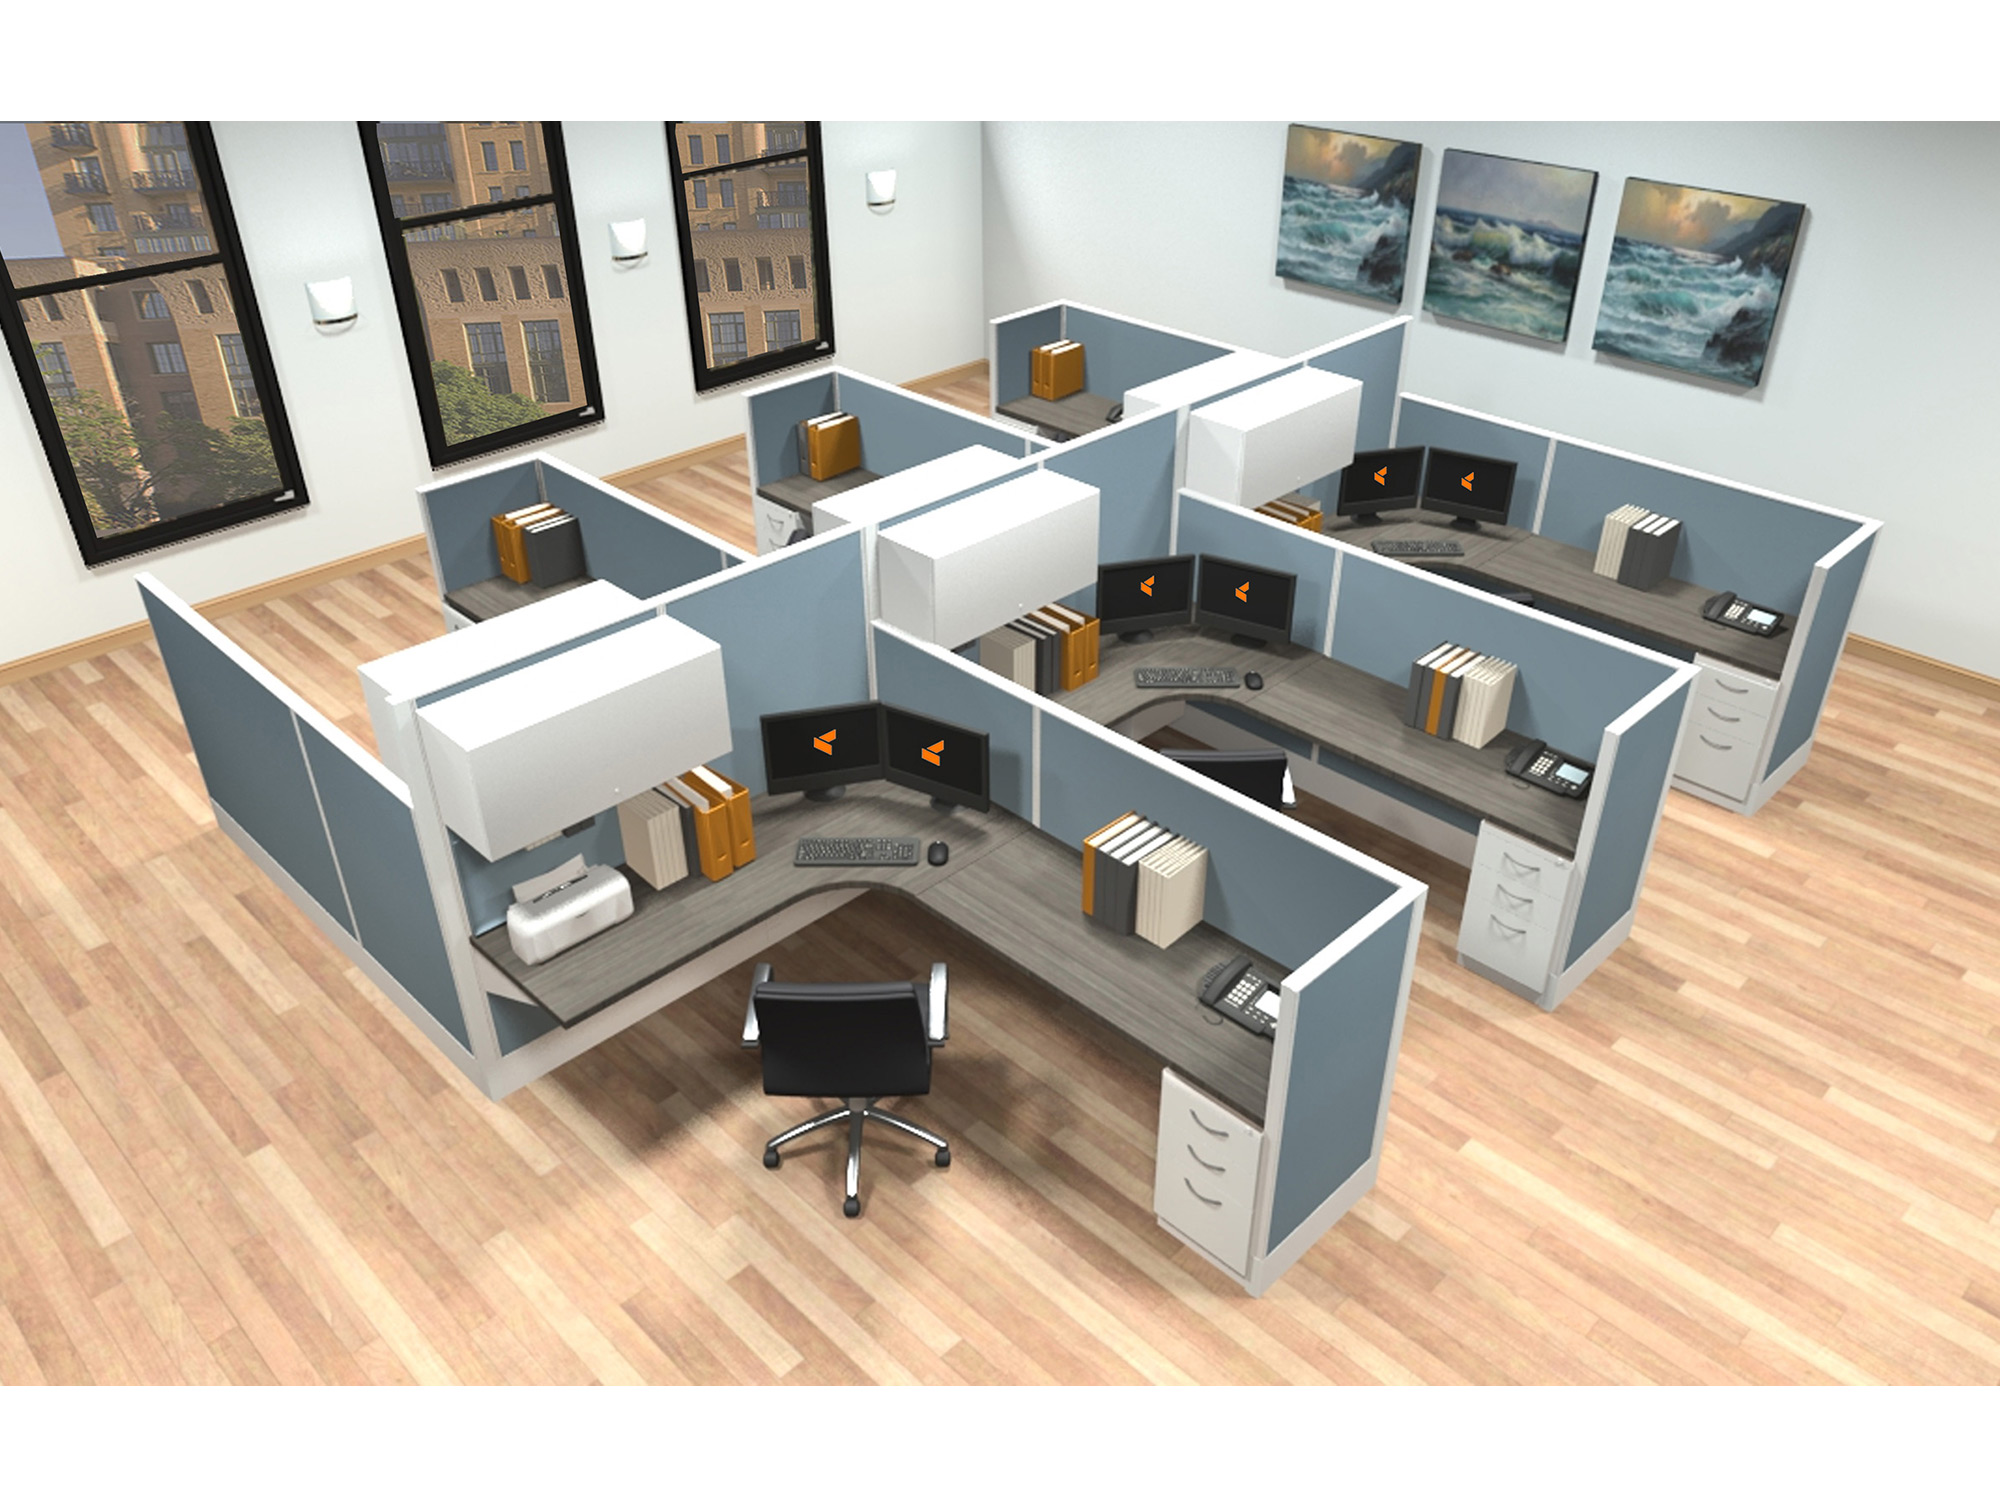 Modular living room furniture systems home design for Modular living room furniture